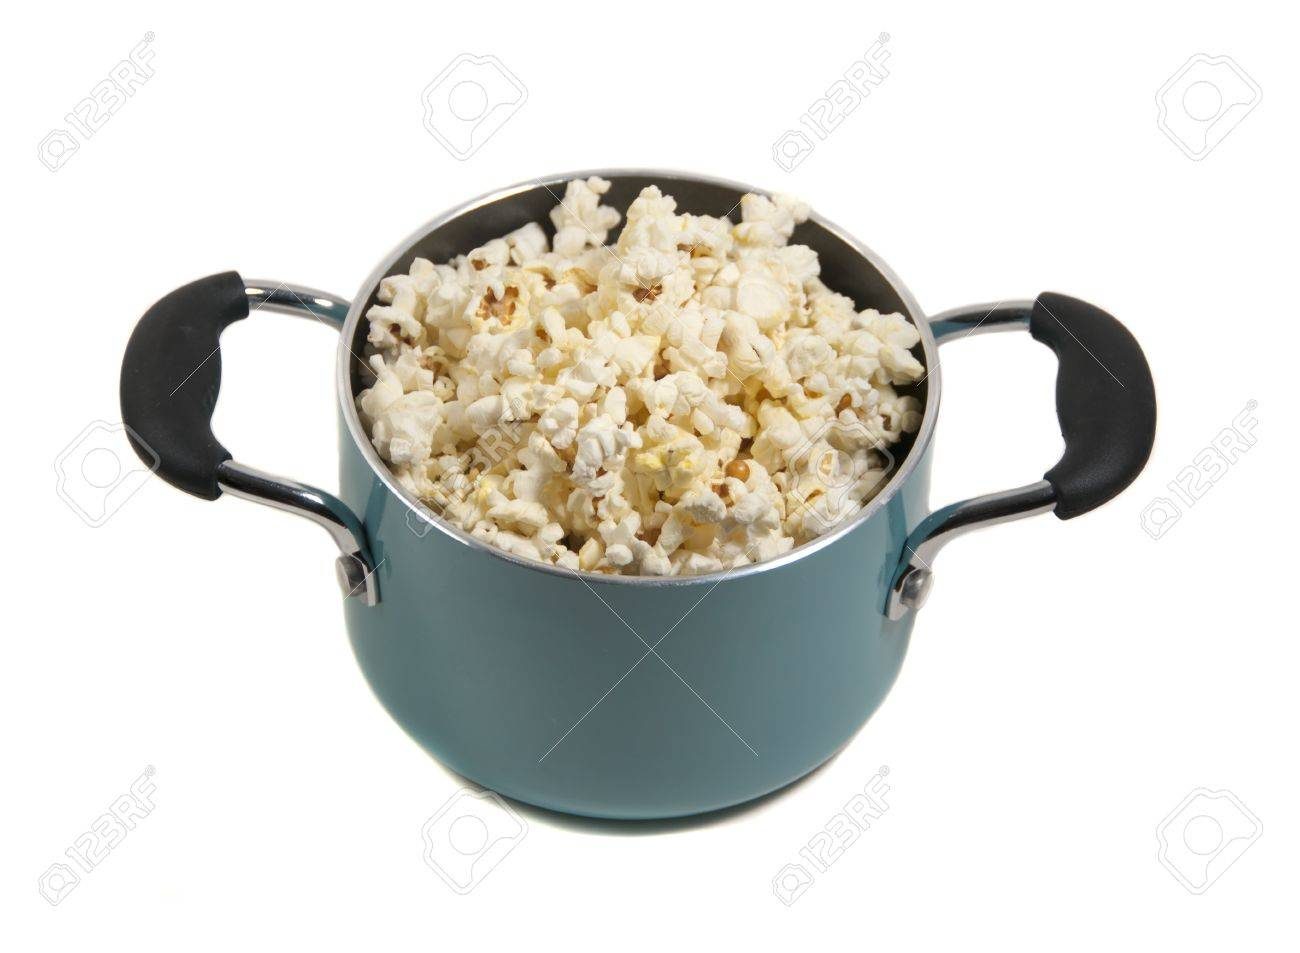 freshly popped corn in turquoise pot - 9651293